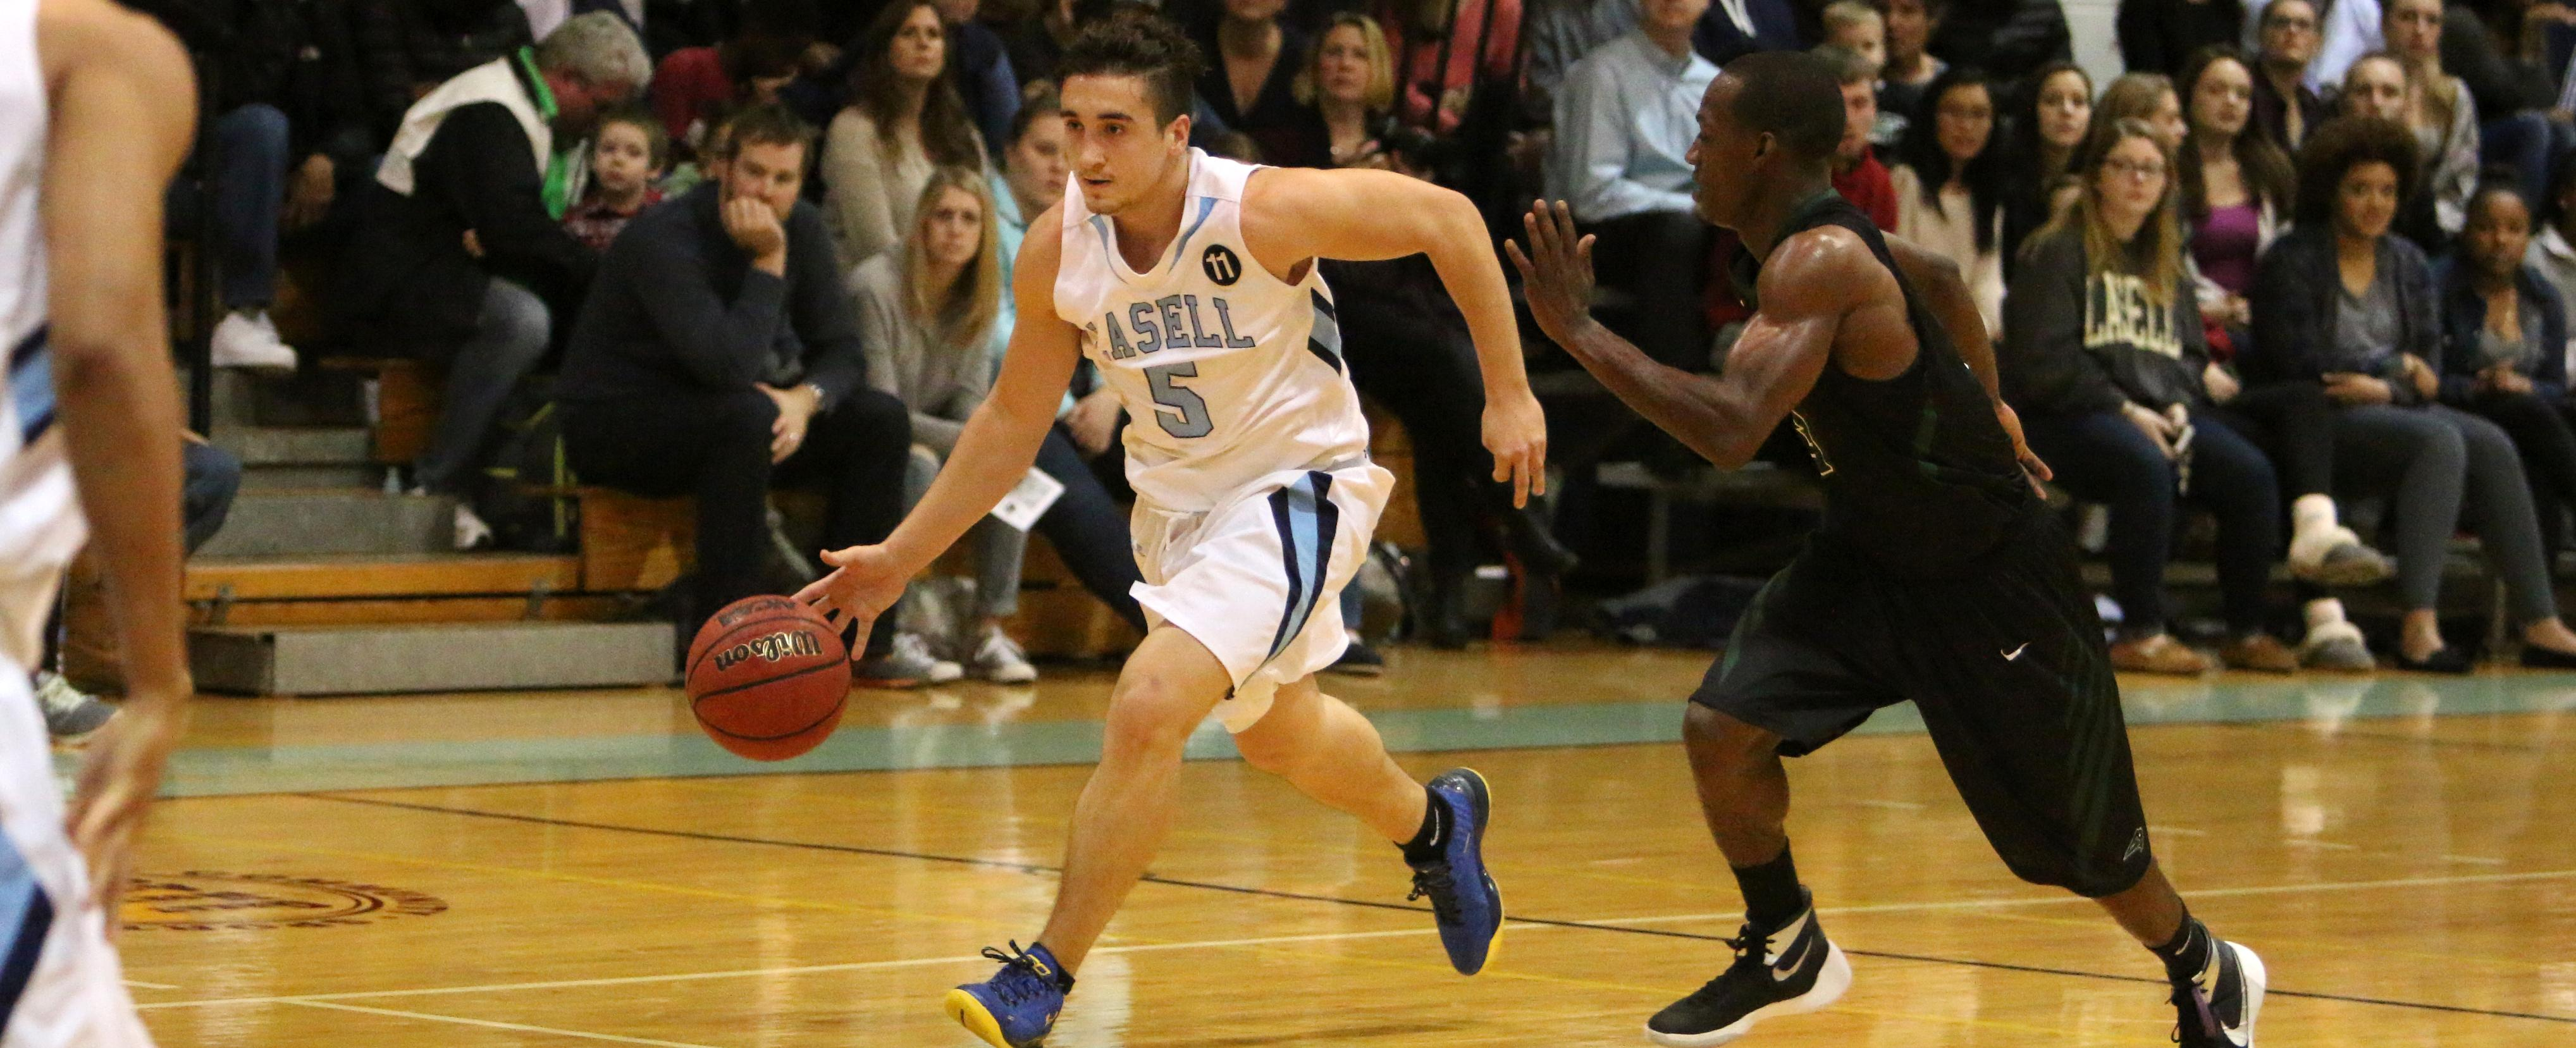 Omanovic Beats the Overtime Buzzer to Propel Men's Hoops Over Rivier 78-75